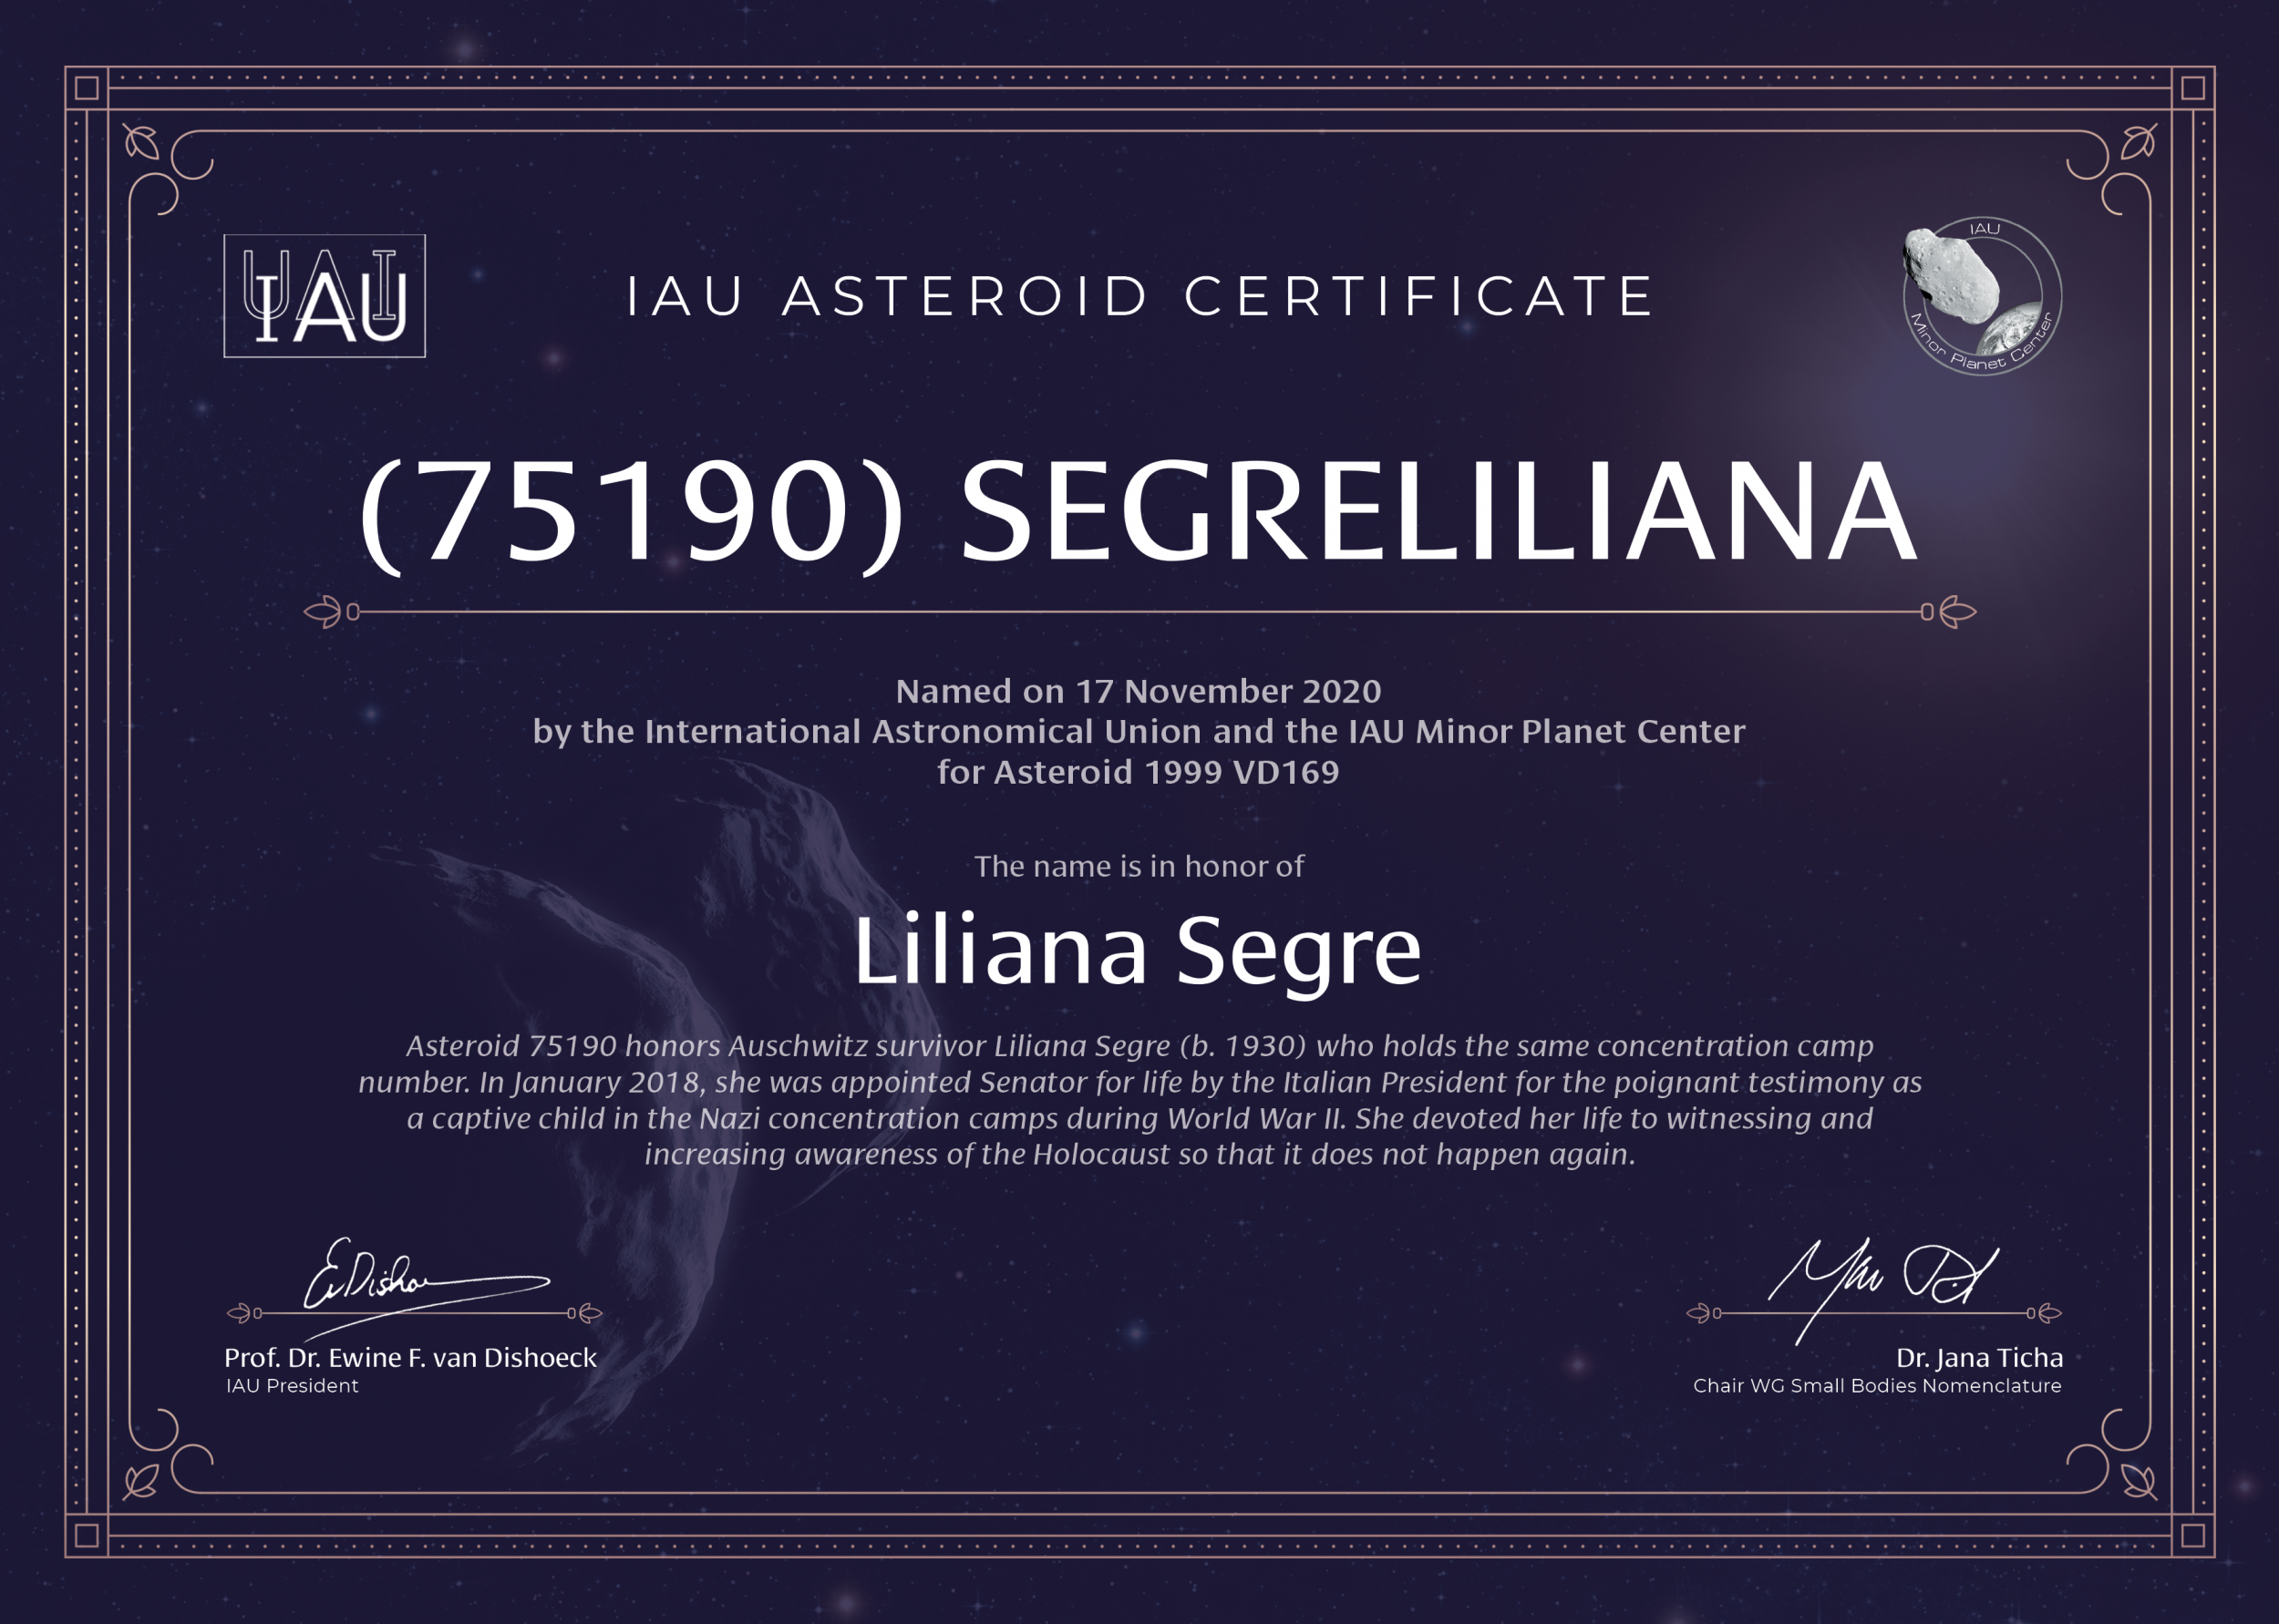 This photo is of the certificate presented to Liliana Segre to announce the naming of an asteroid in her honor.